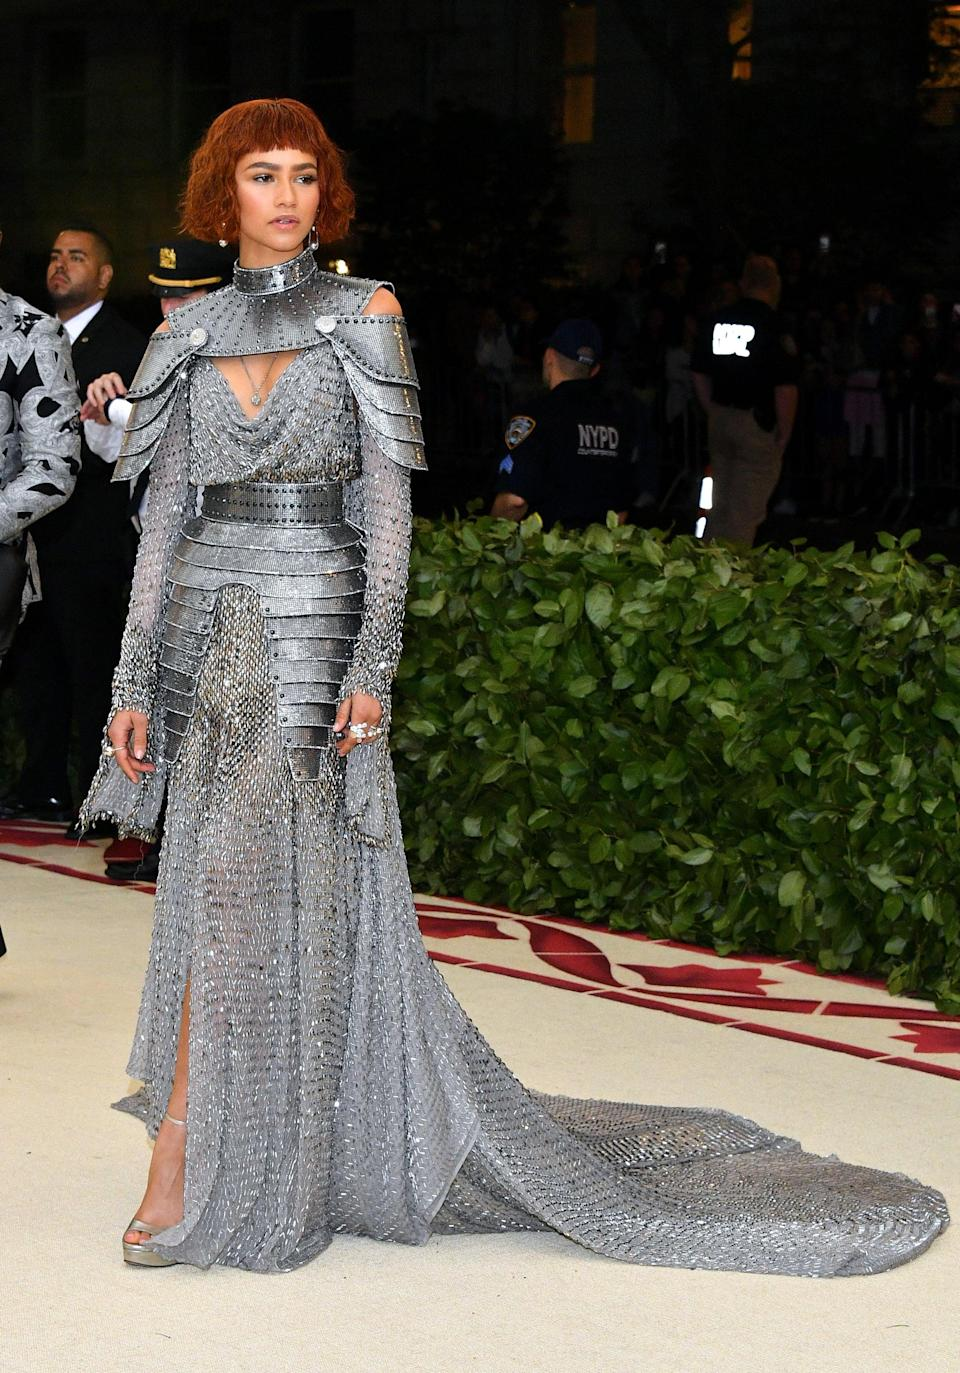 """<p>That one time Roach pulled inspo from Joan of Arc for <a class=""""link rapid-noclick-resp"""" href=""""https://www.popsugar.com/Zendaya"""" rel=""""nofollow noopener"""" target=""""_blank"""" data-ylk=""""slk:Zendaya"""">Zendaya</a>'s Met Gala look. And yes, according to the actor, the metallic Versace gown is as heavy as it looks.</p>"""